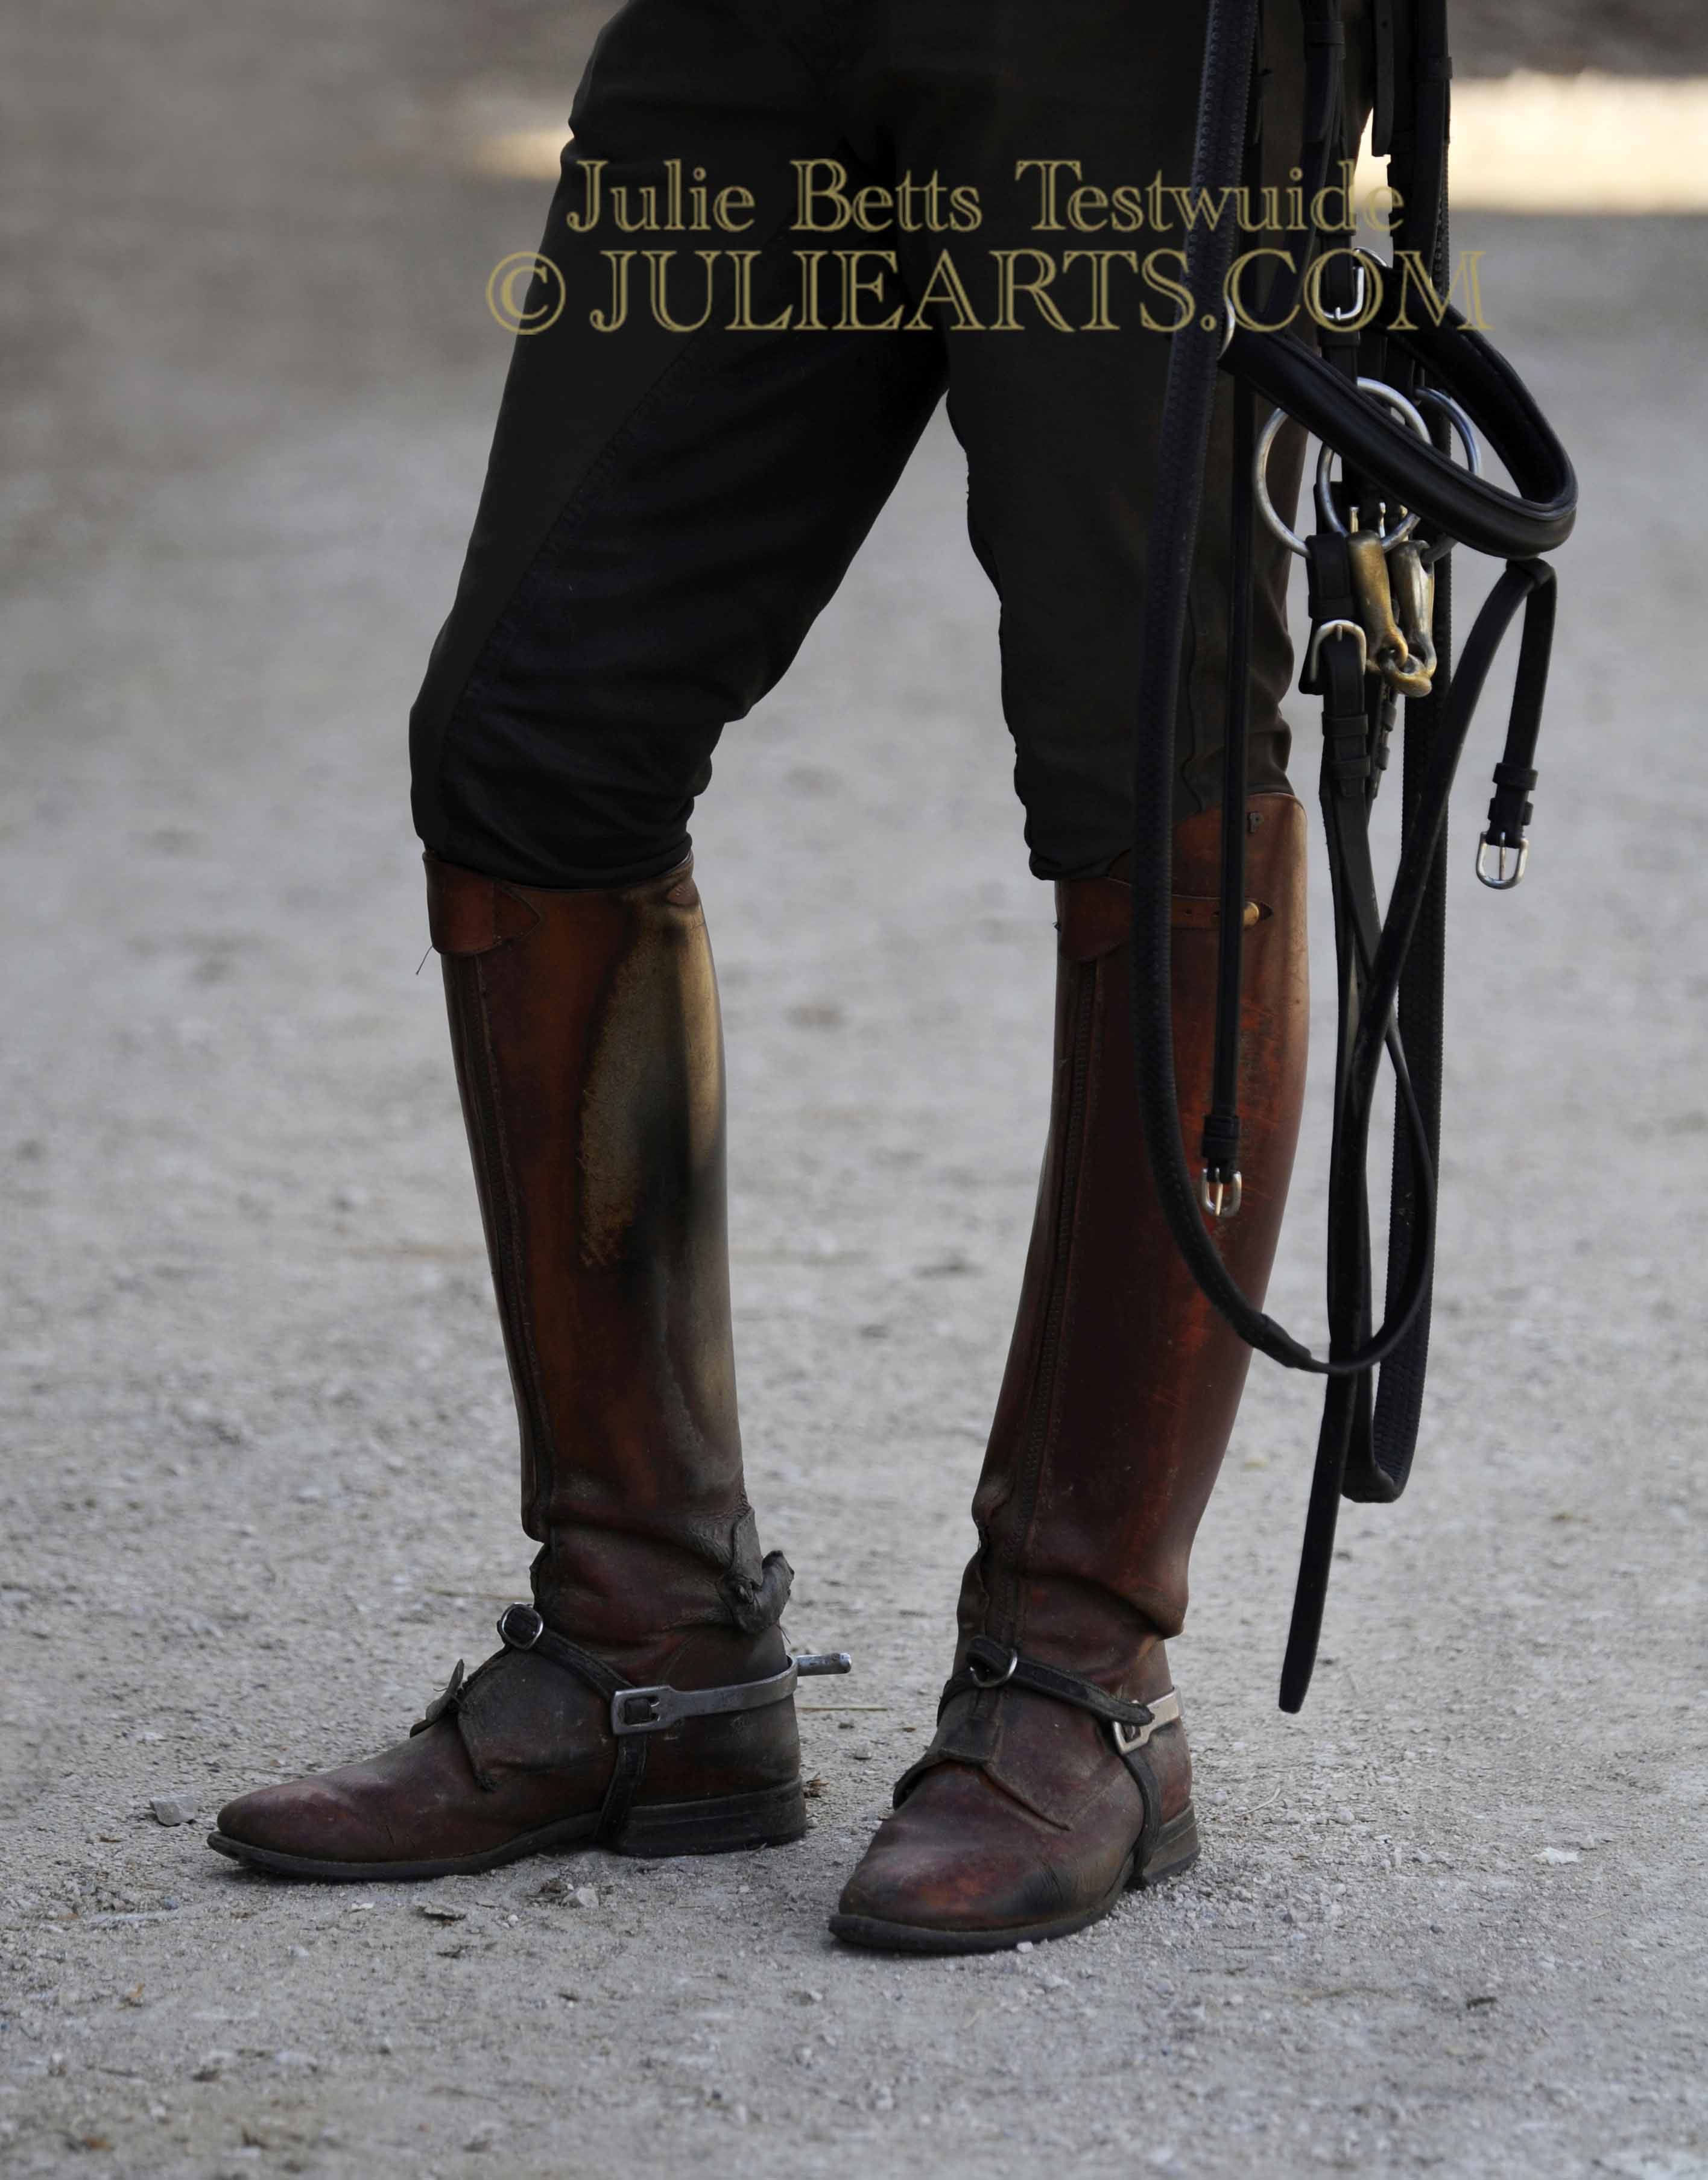 Boots and Bridle